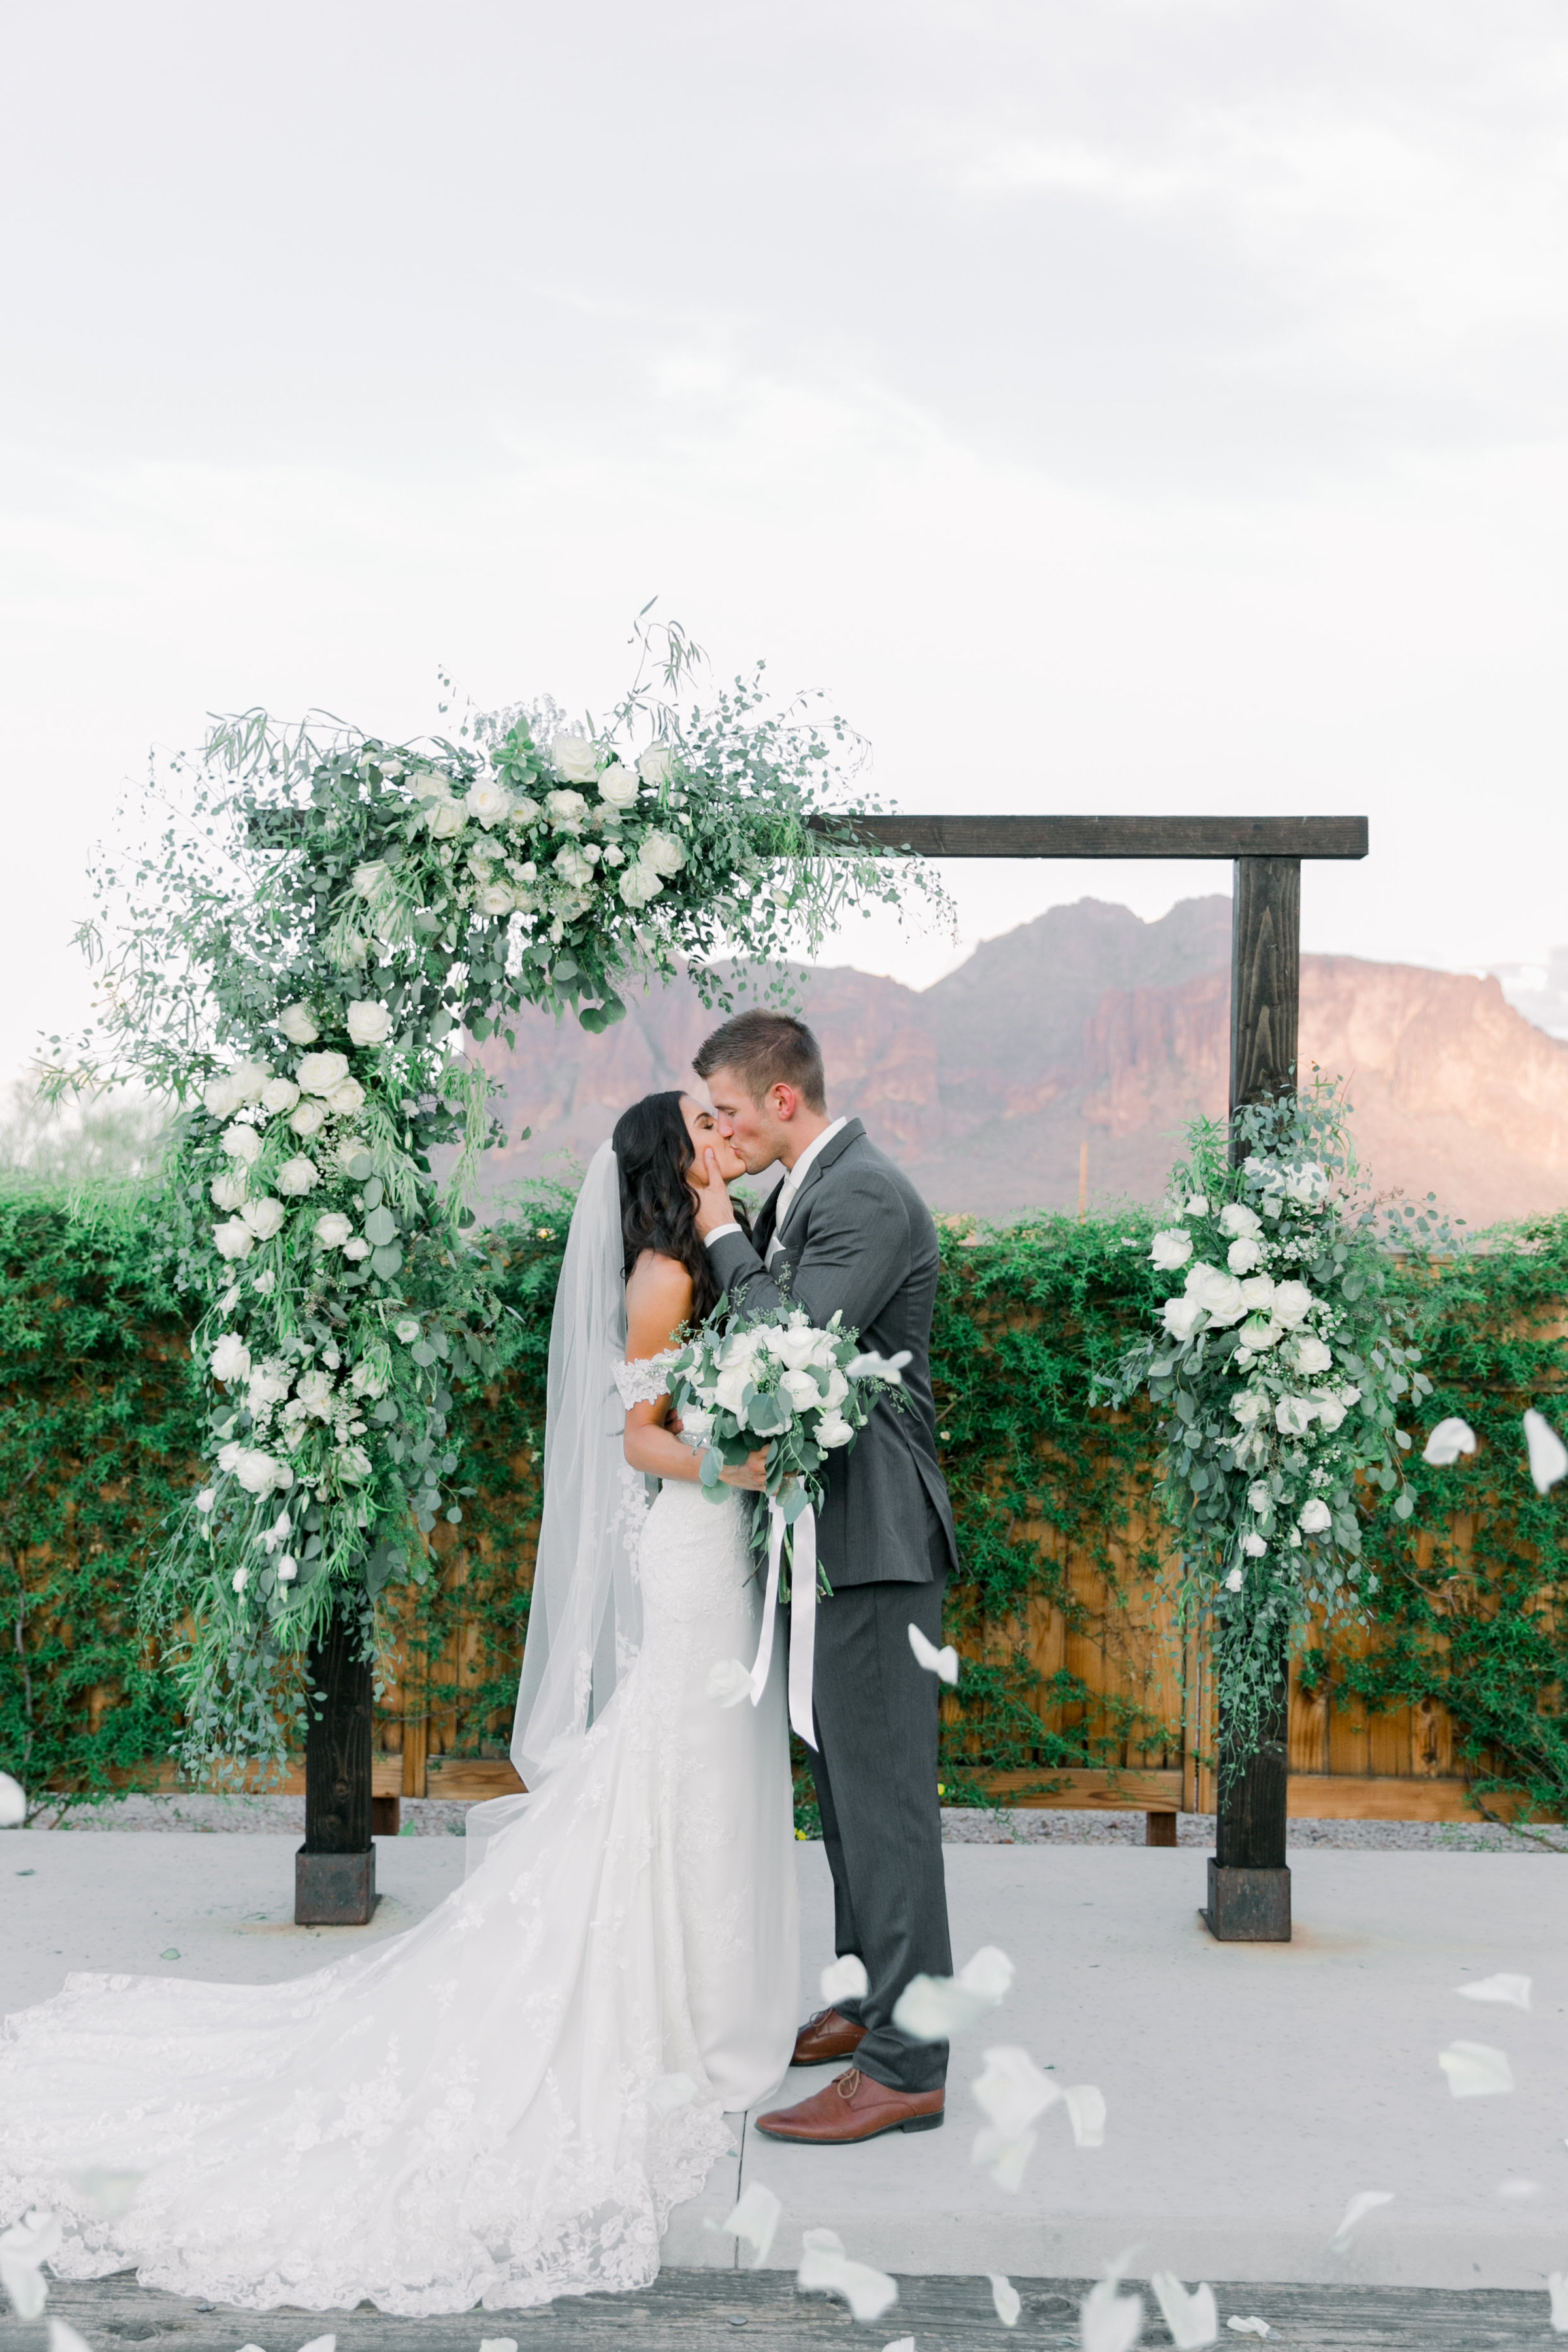 Karlie Colleen Photography - The Paseo Arizona Desert Wedding - Jackie & Ryan-170